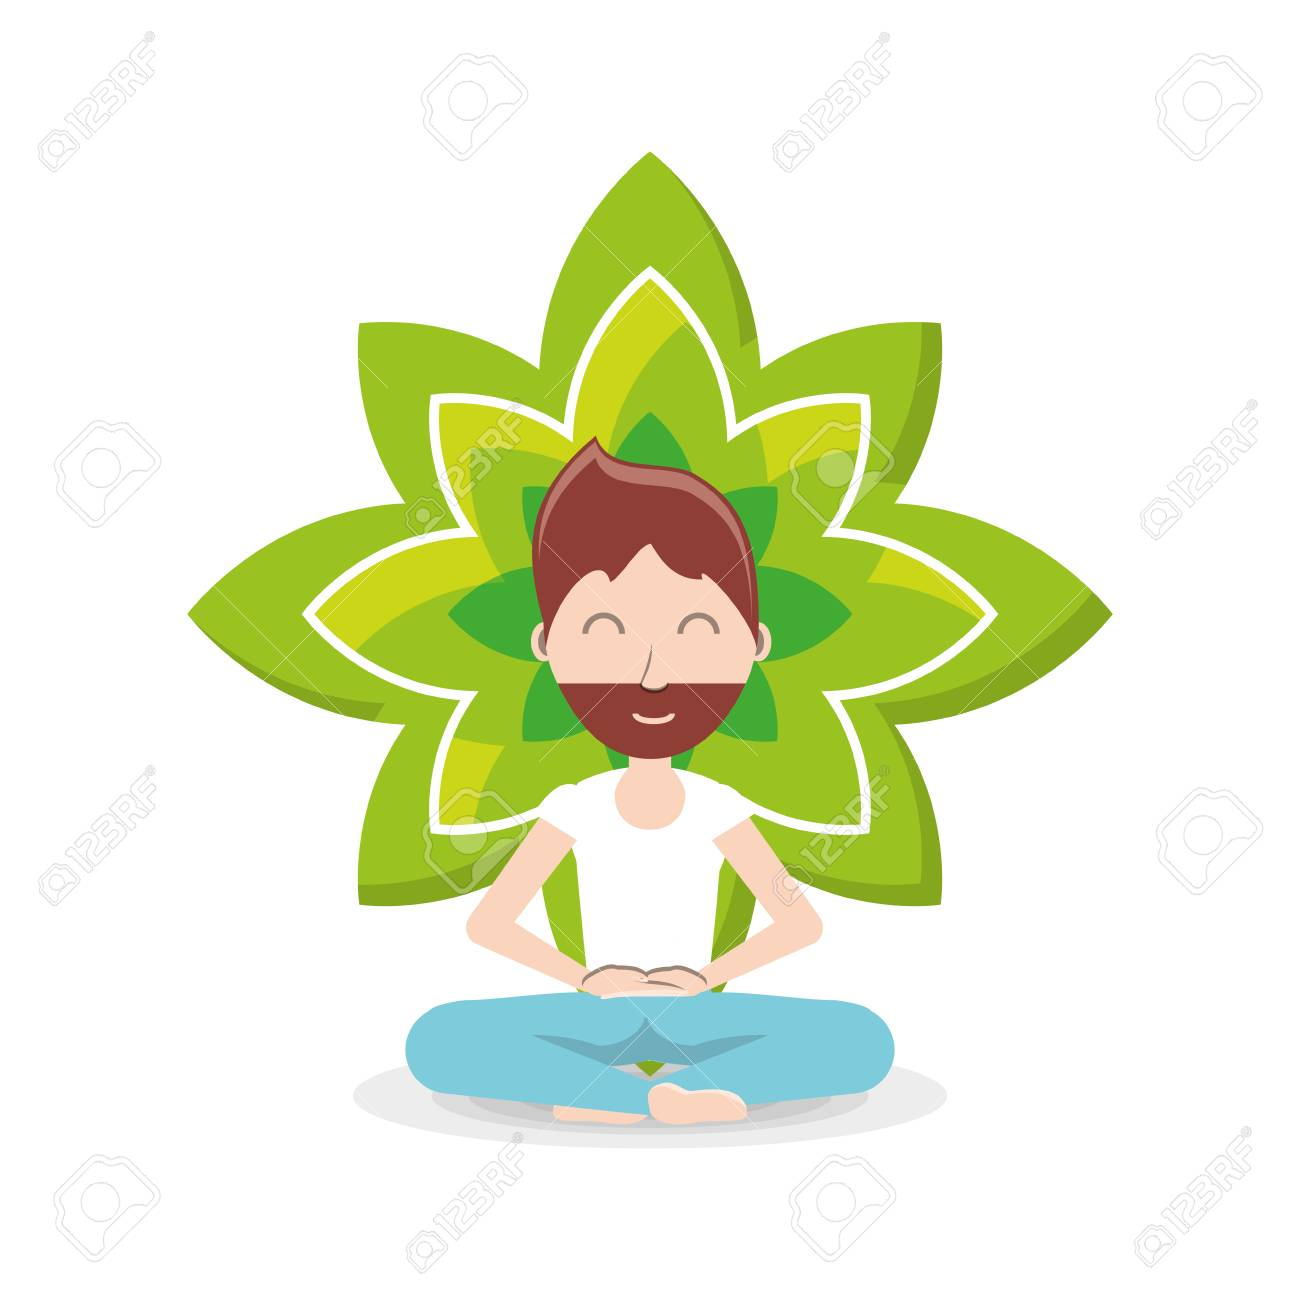 Lotus flower and cartoon man practicing yoga in a lotus pose lotus flower and cartoon man practicing yoga in a lotus pose icon over background colorful design mightylinksfo